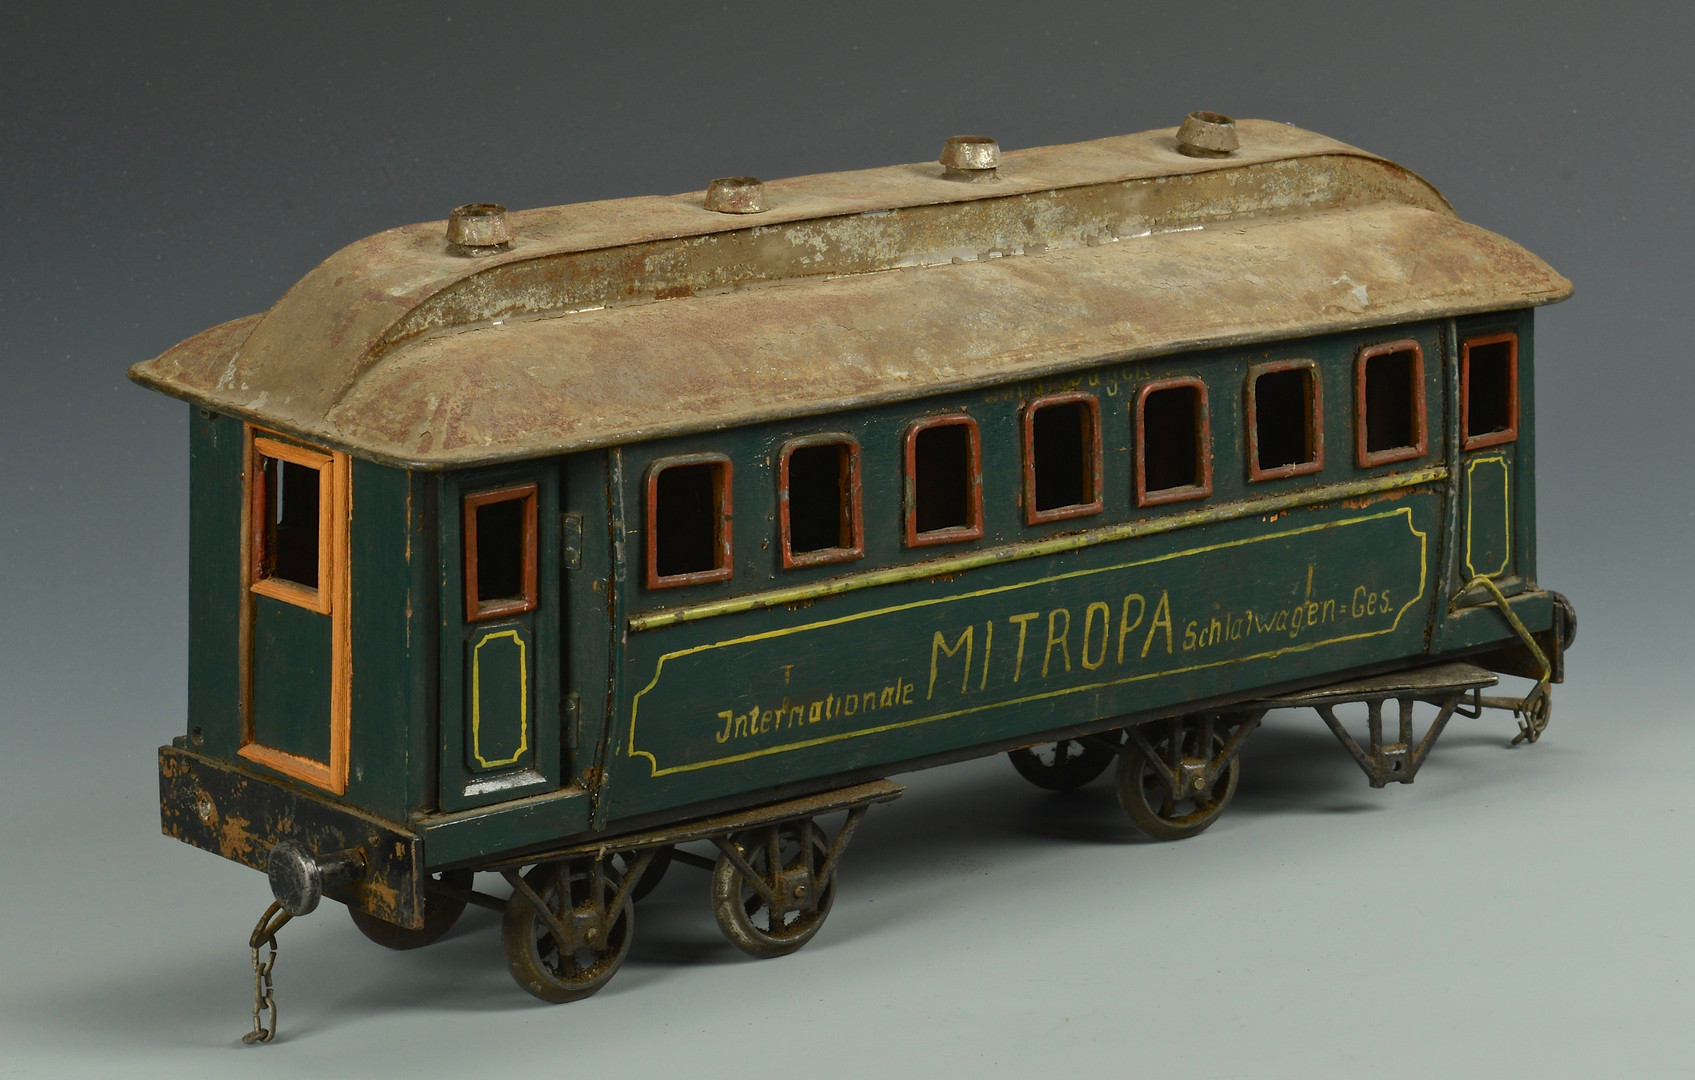 Lot 473 5 Large Floor Scale Wooden Train Cars Mitropa